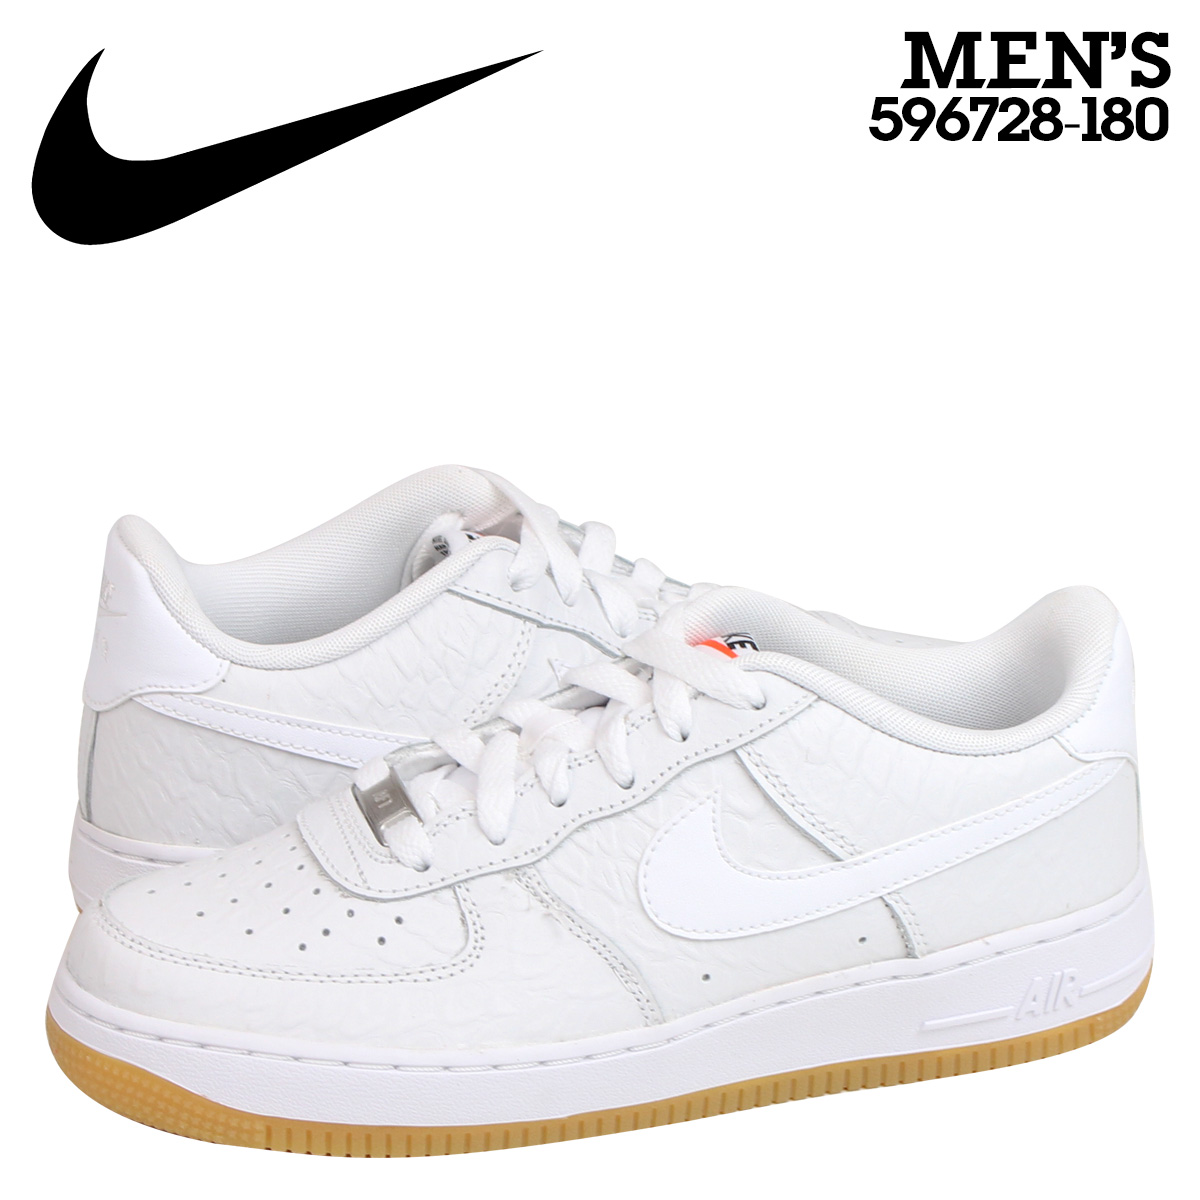 o rozsądnej cenie gdzie kupić bardzo popularny NIKE Nike air force sneakers Lady's AIR FORCE 1 LOW GS air force 1 low  596,728-180 shoes white white